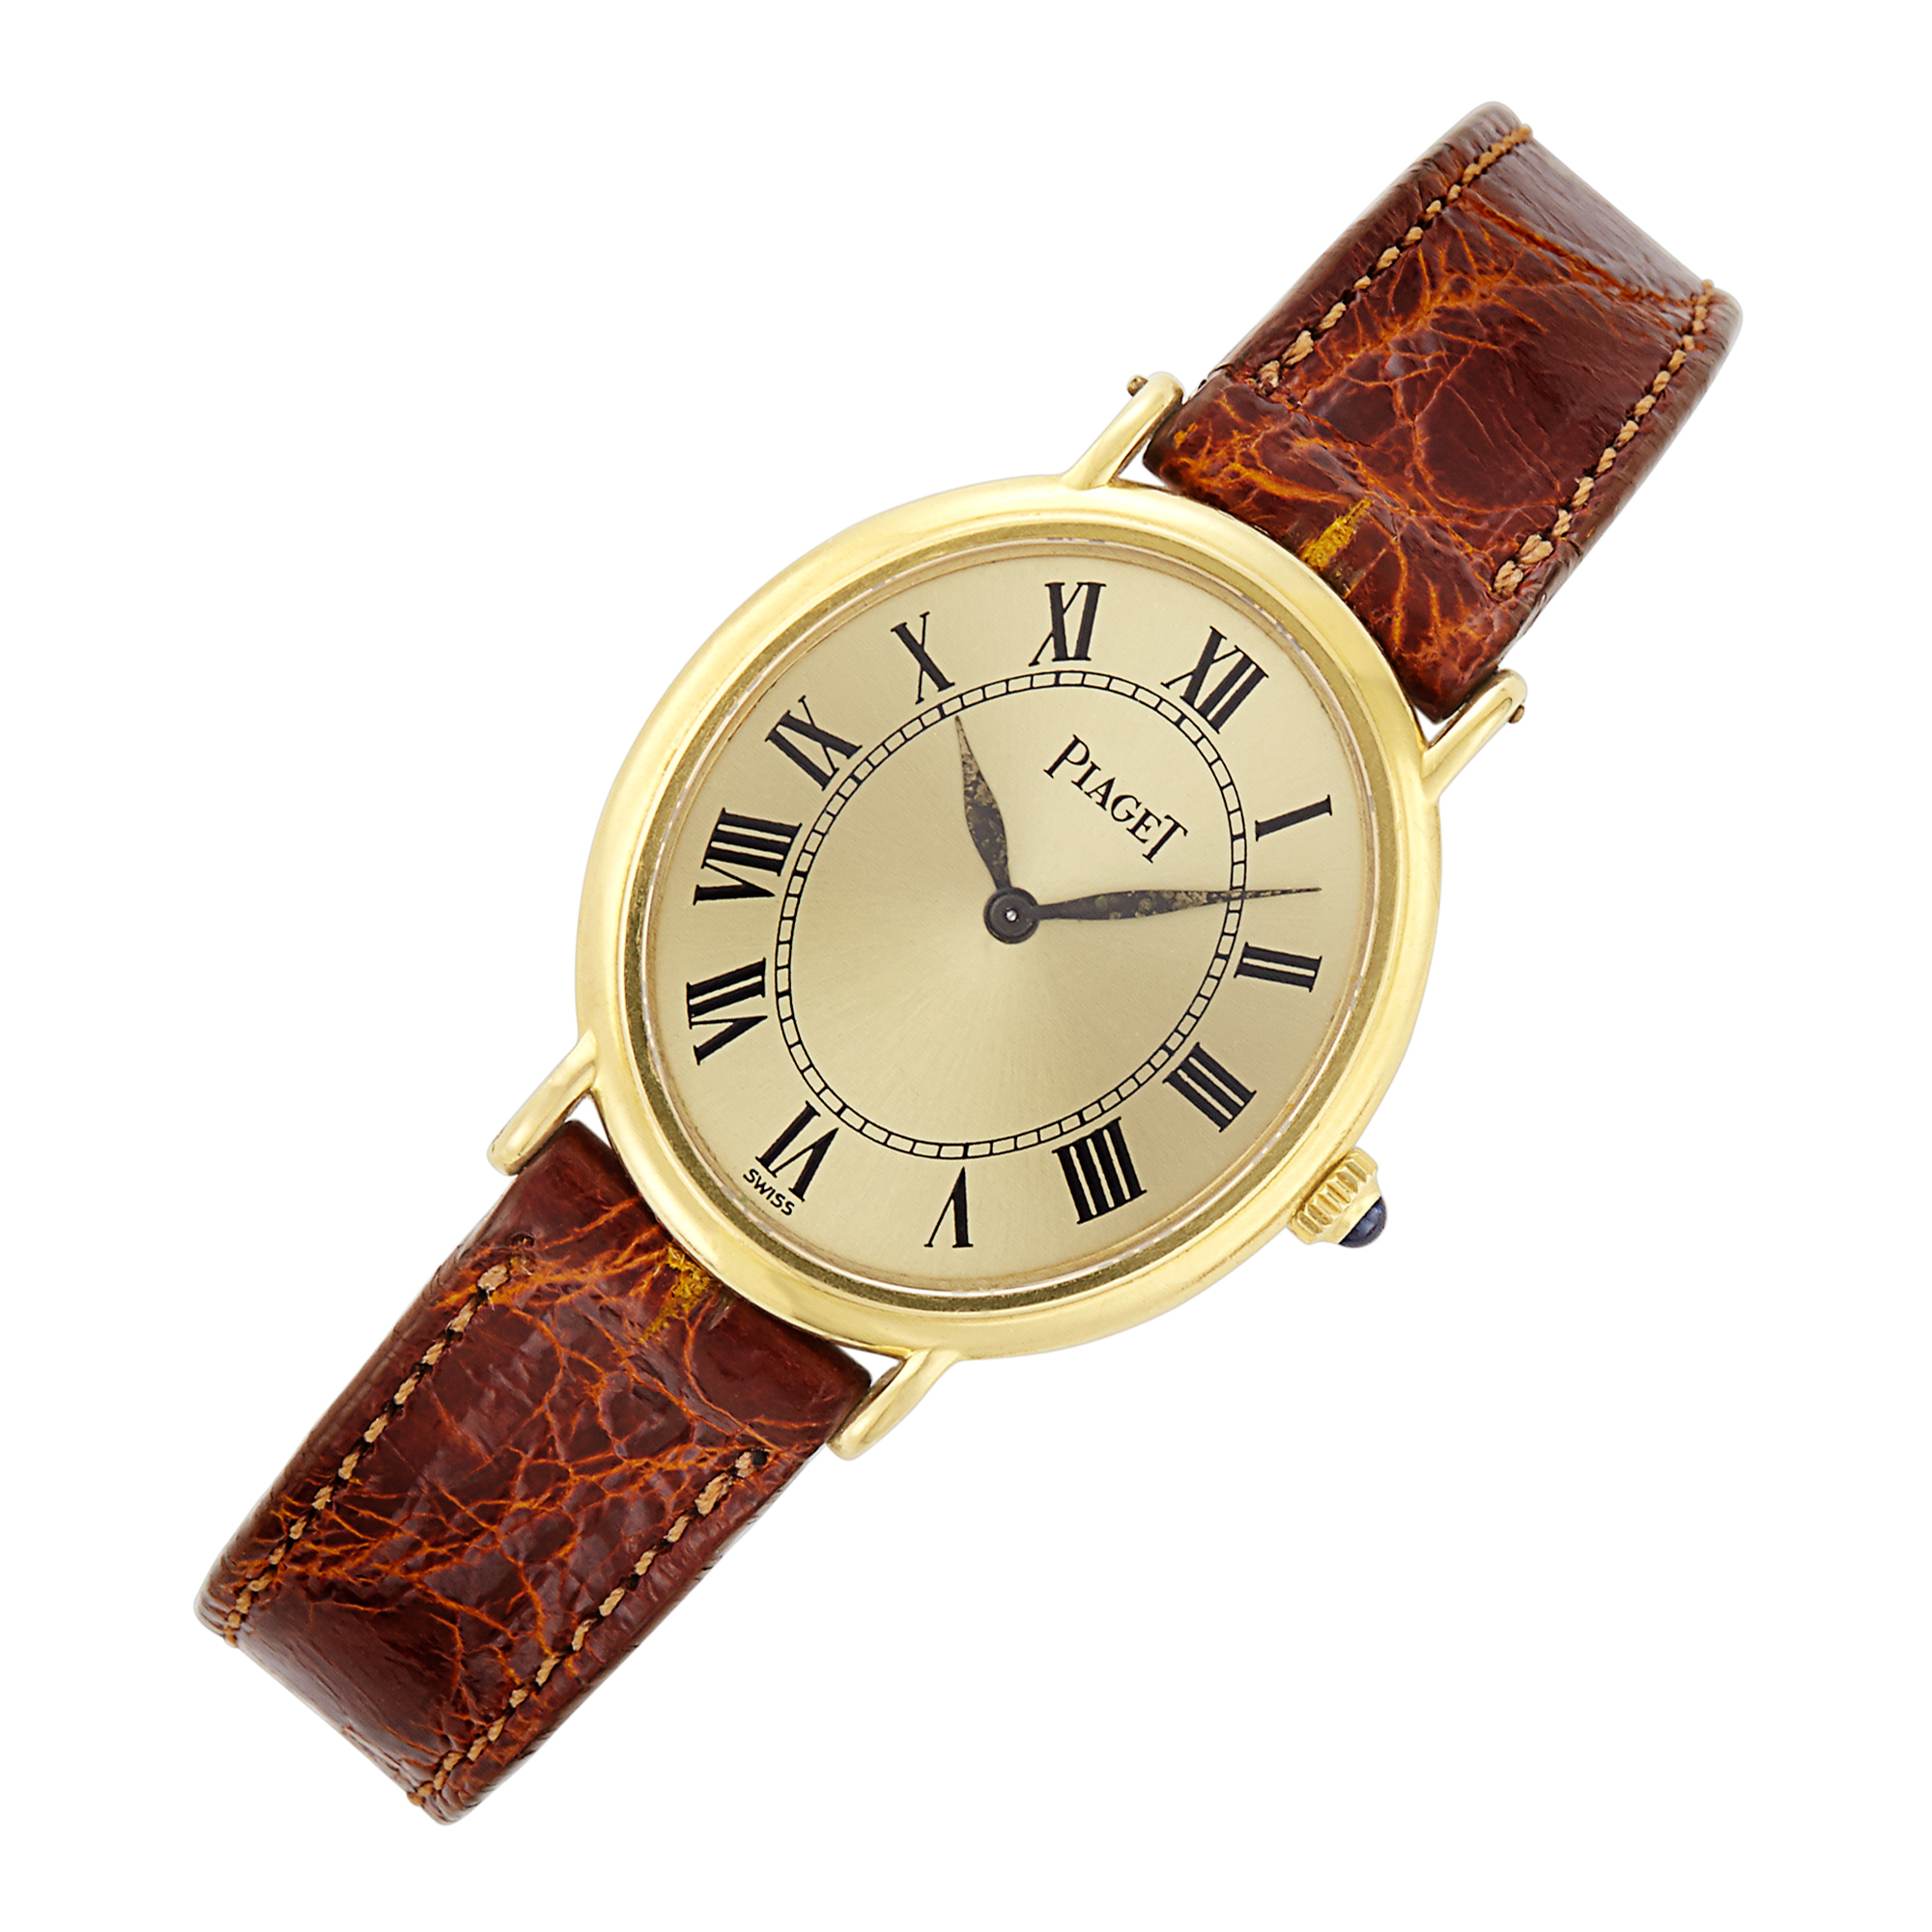 Lot image - Piaget, Gold Wristwatch, Ref. 639